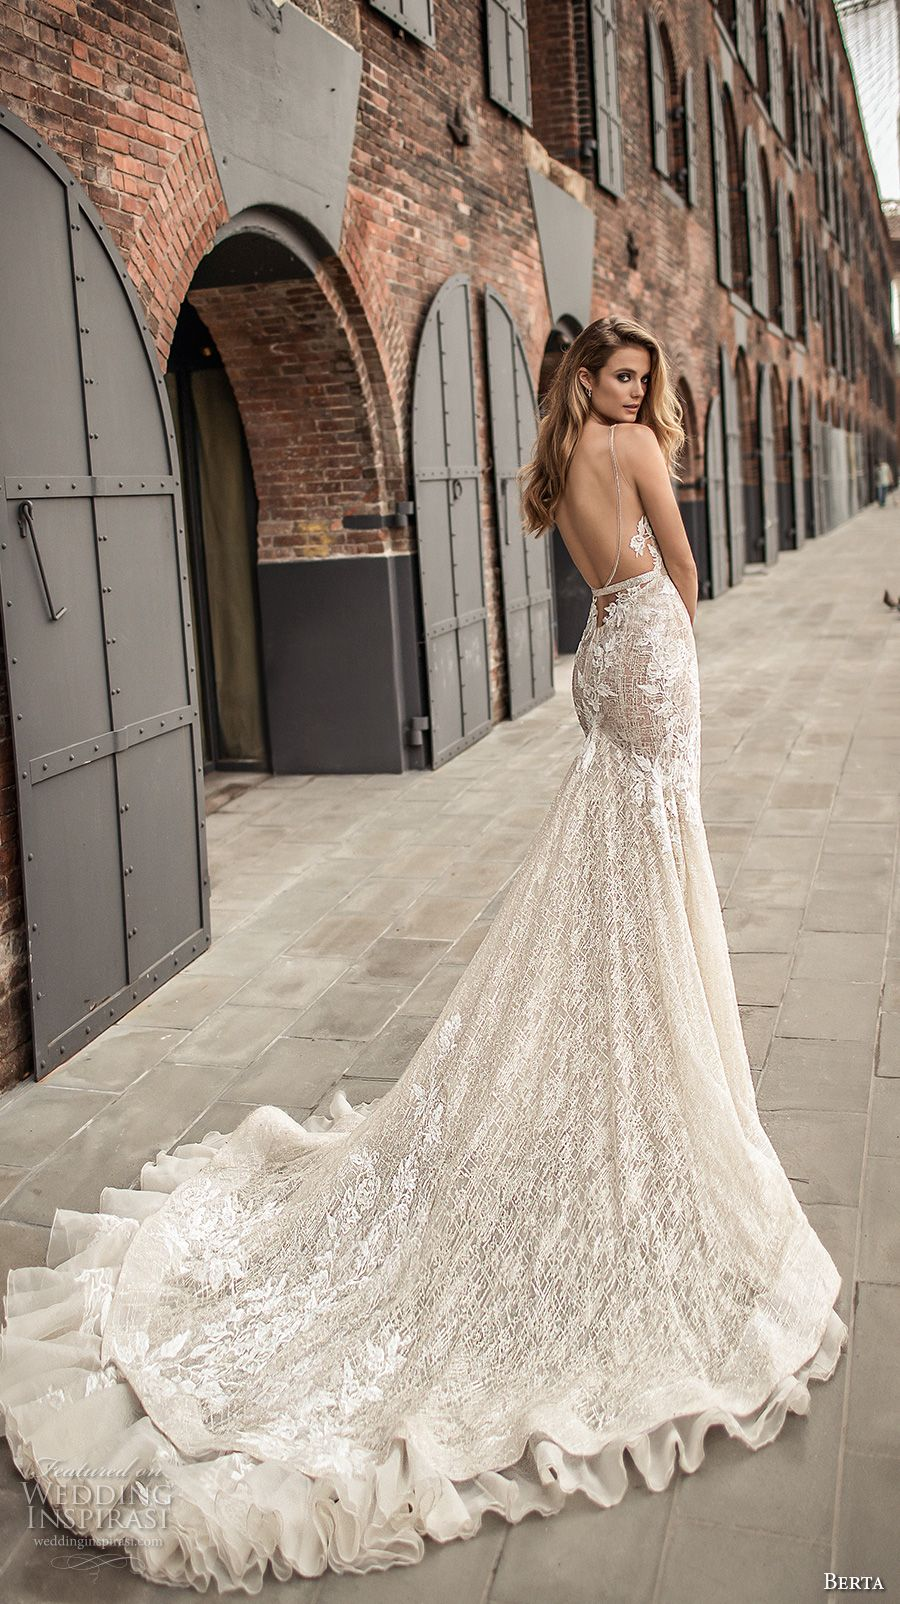 berta spring 2018 bridal sleeveless deep plunging v neckline full  embellishment sexy elegant fit and flare wedding dress open low back chapel  train (7) bv ... 0d0302e1e